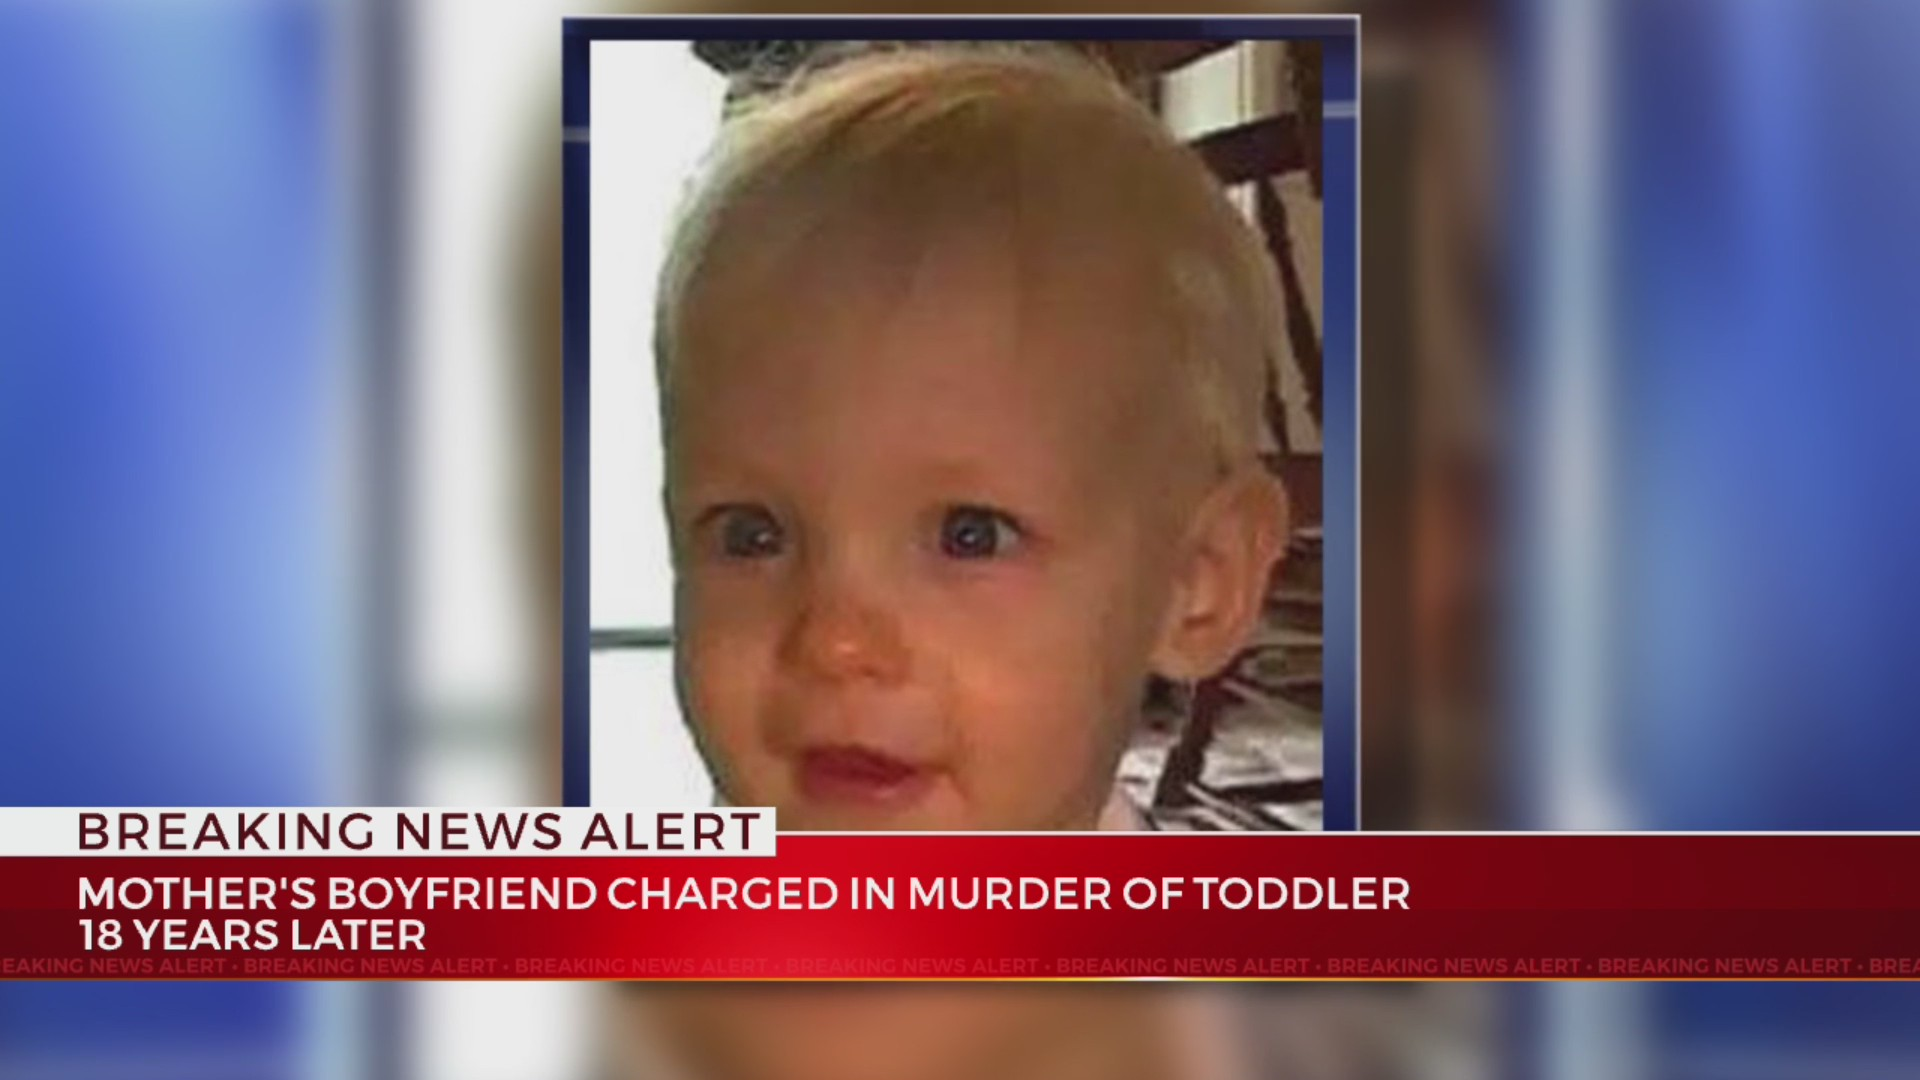 Man indicted for murder in 2001 toddler's death | WKRN News 2